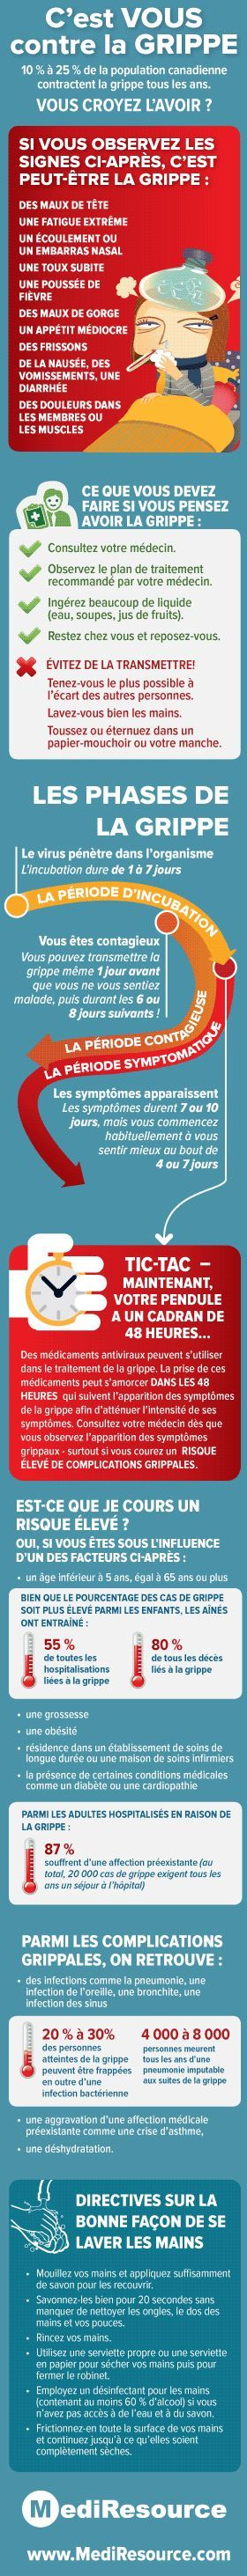 La Grippe: Infographie | Great for French thematic unit on health and nutrition